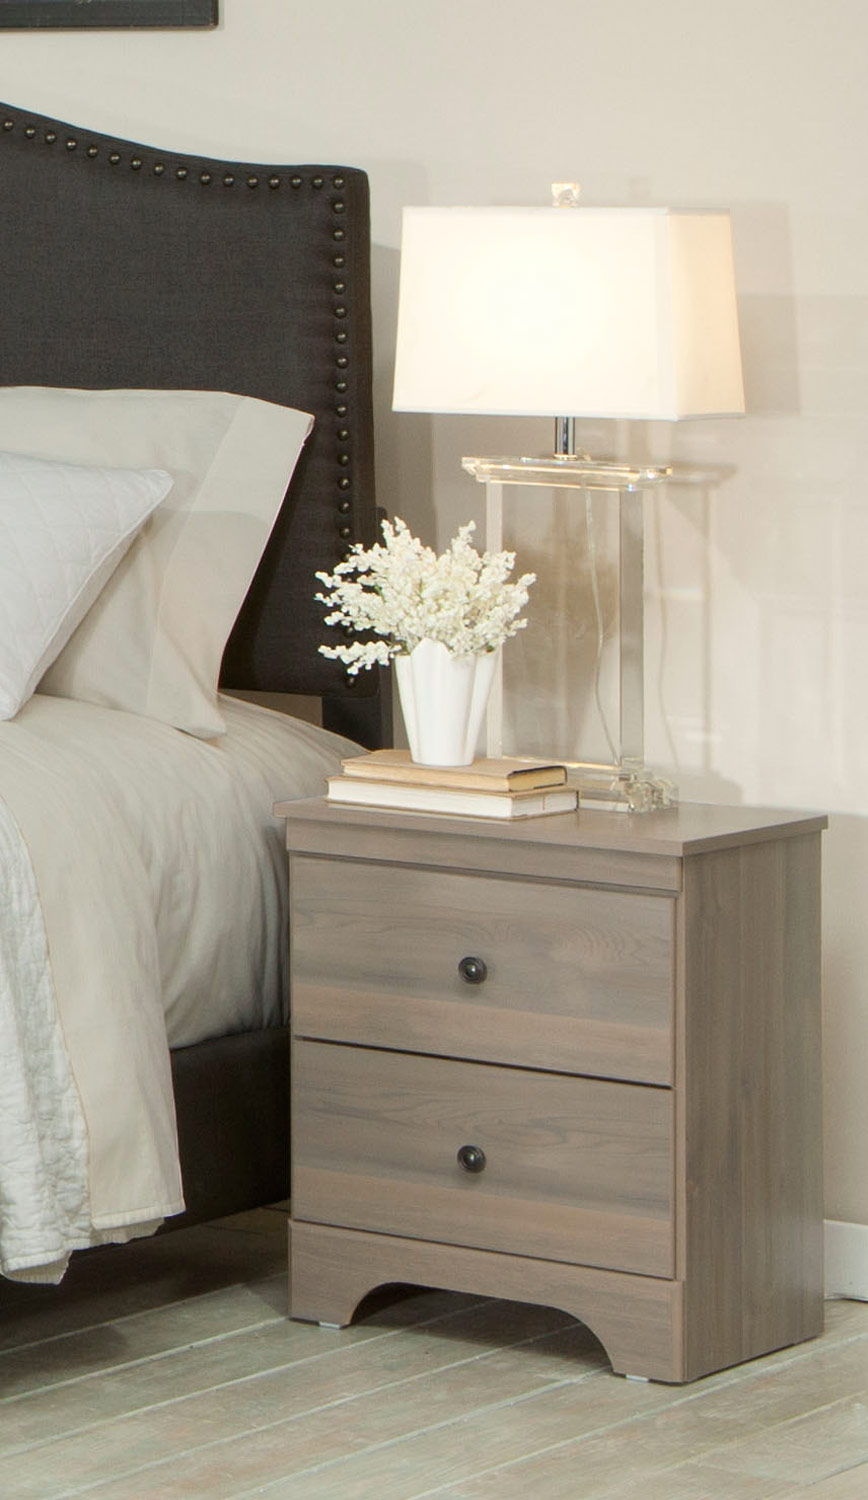 Kith Furniture Raleigh Nightstand